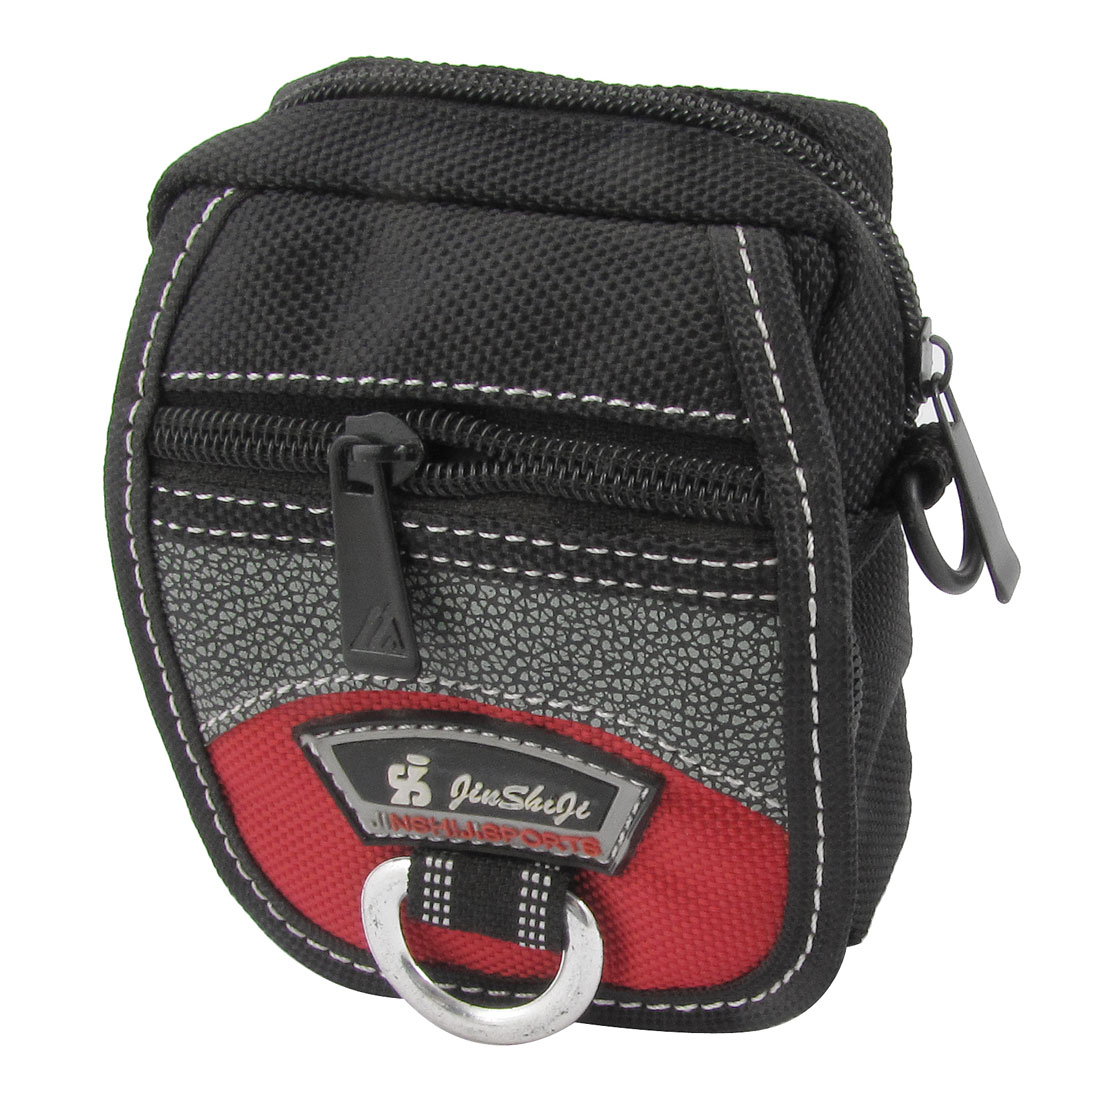 Nylon 3 Zippered Pocket Mini Camera Cell Phone Flap Bag Pouch